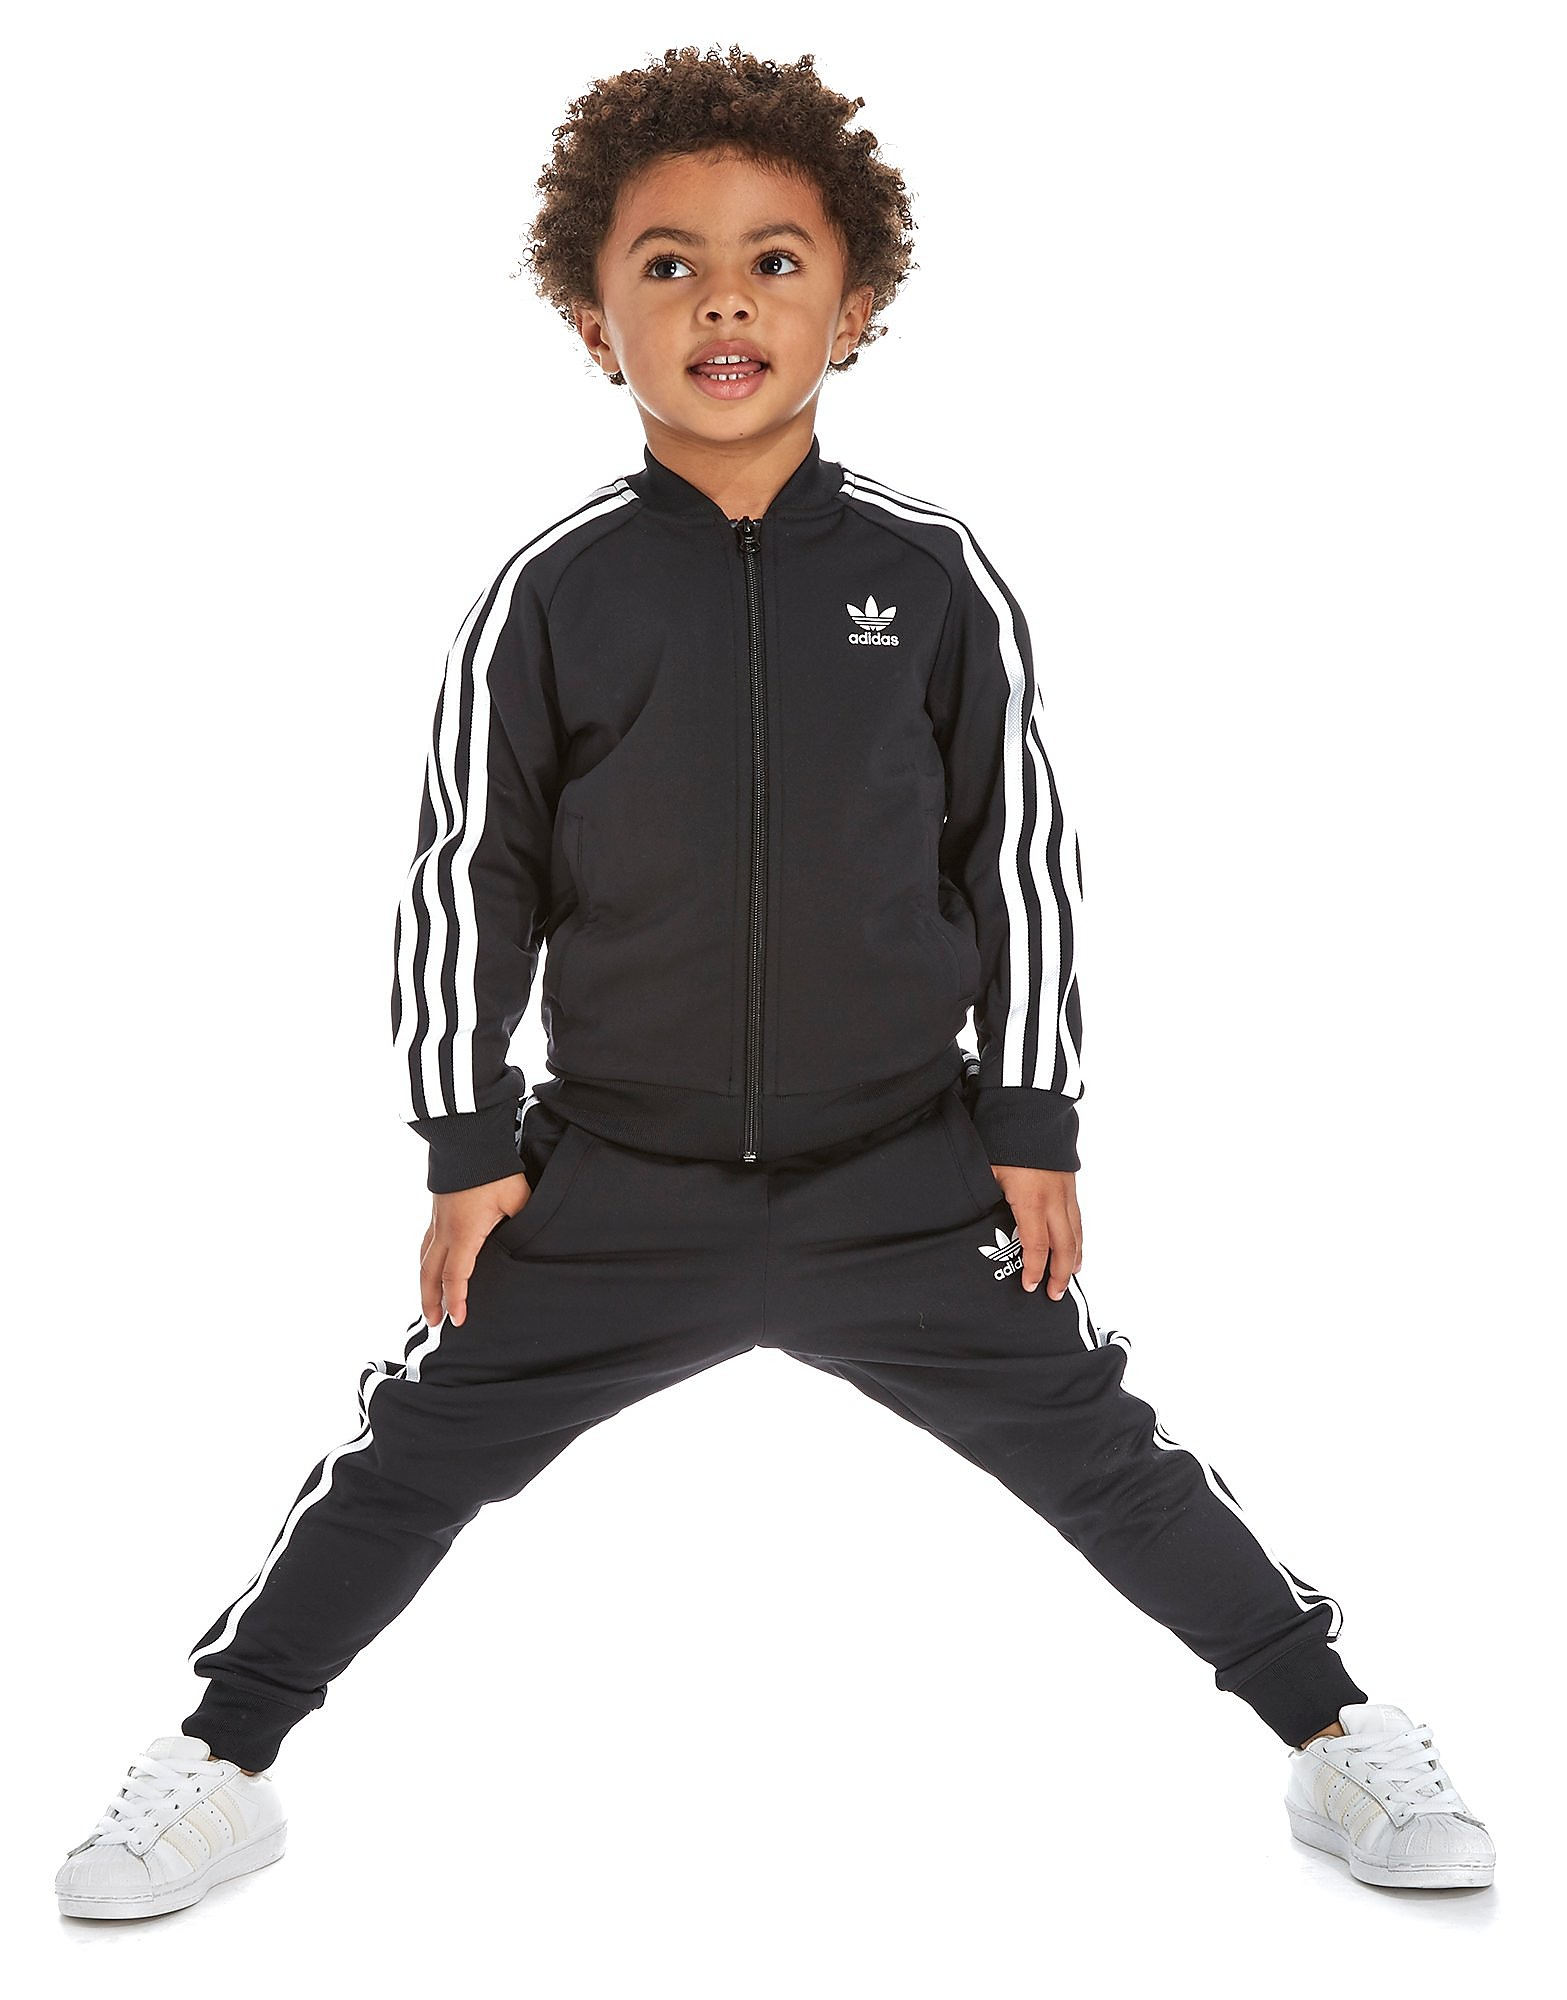 adidas Originals chándal Superstar infantil